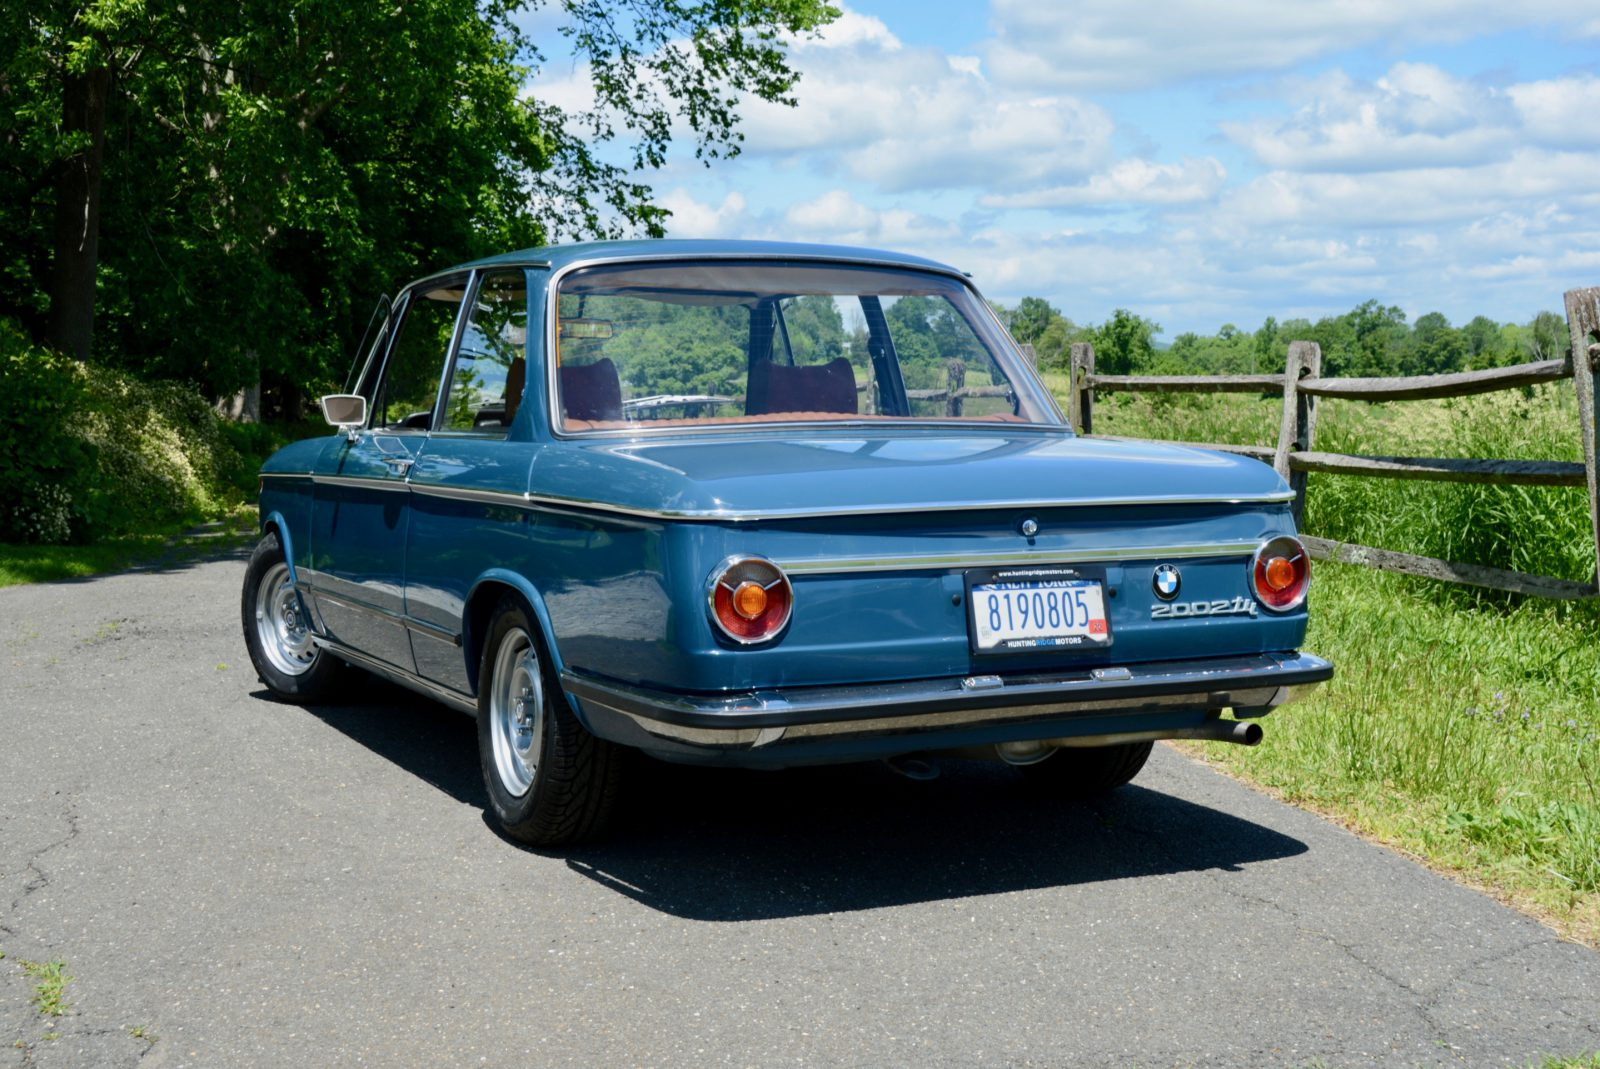 1973 Bmw 2002 Tii Finished In Riviera Blue With Saddle Interior Hunting Ridge Motors